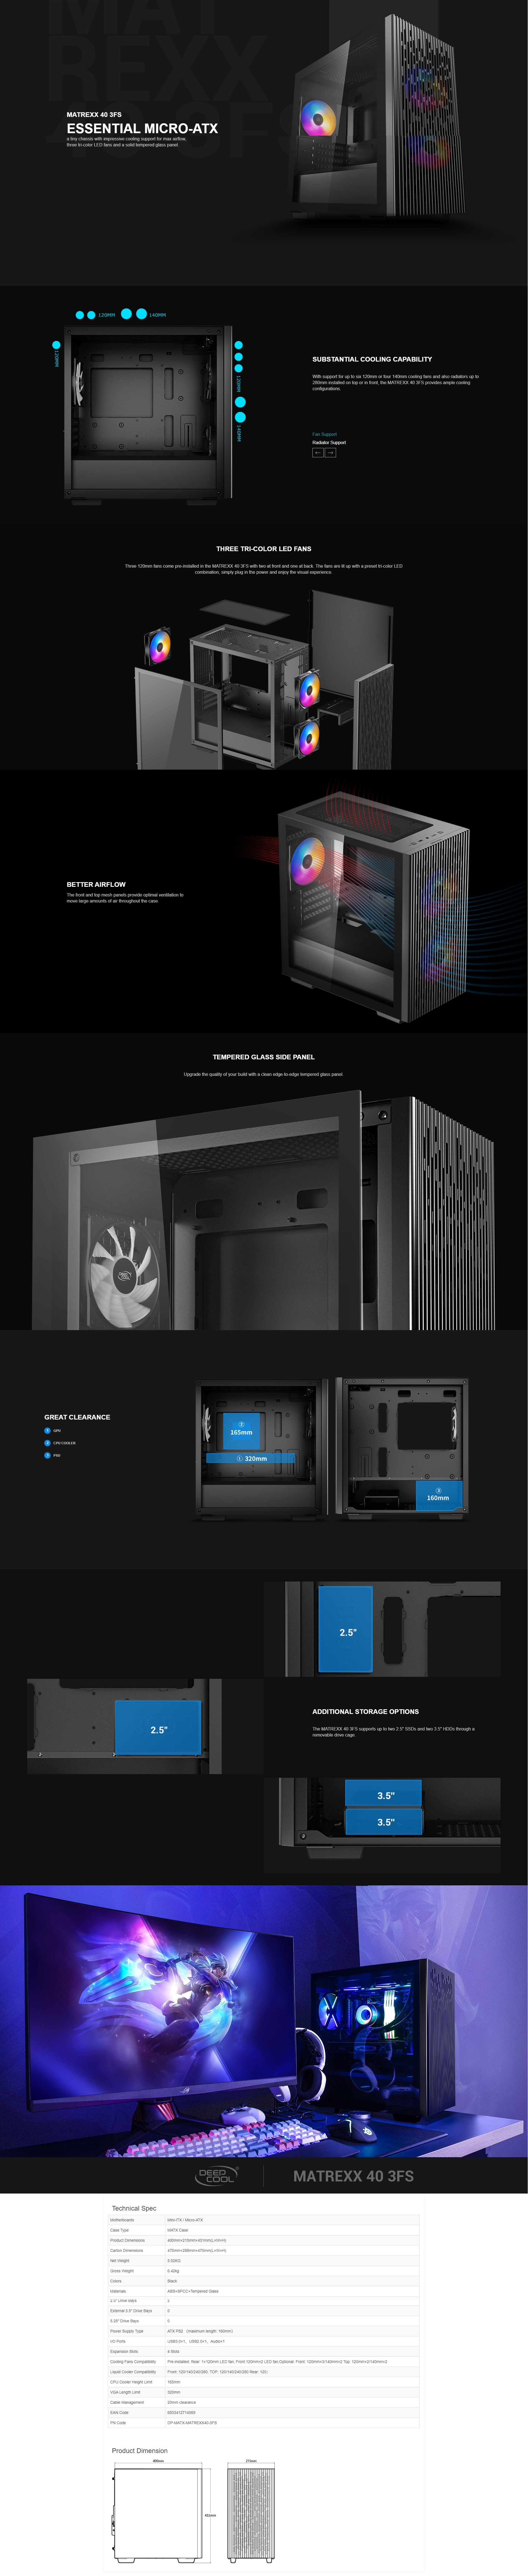 A large marketing image providing additional information about the product Deepcool Matrexx 40 3FS Black mATX Mid Tower Case w/ Tempered Glass Side Panel - Additional alt info not provided